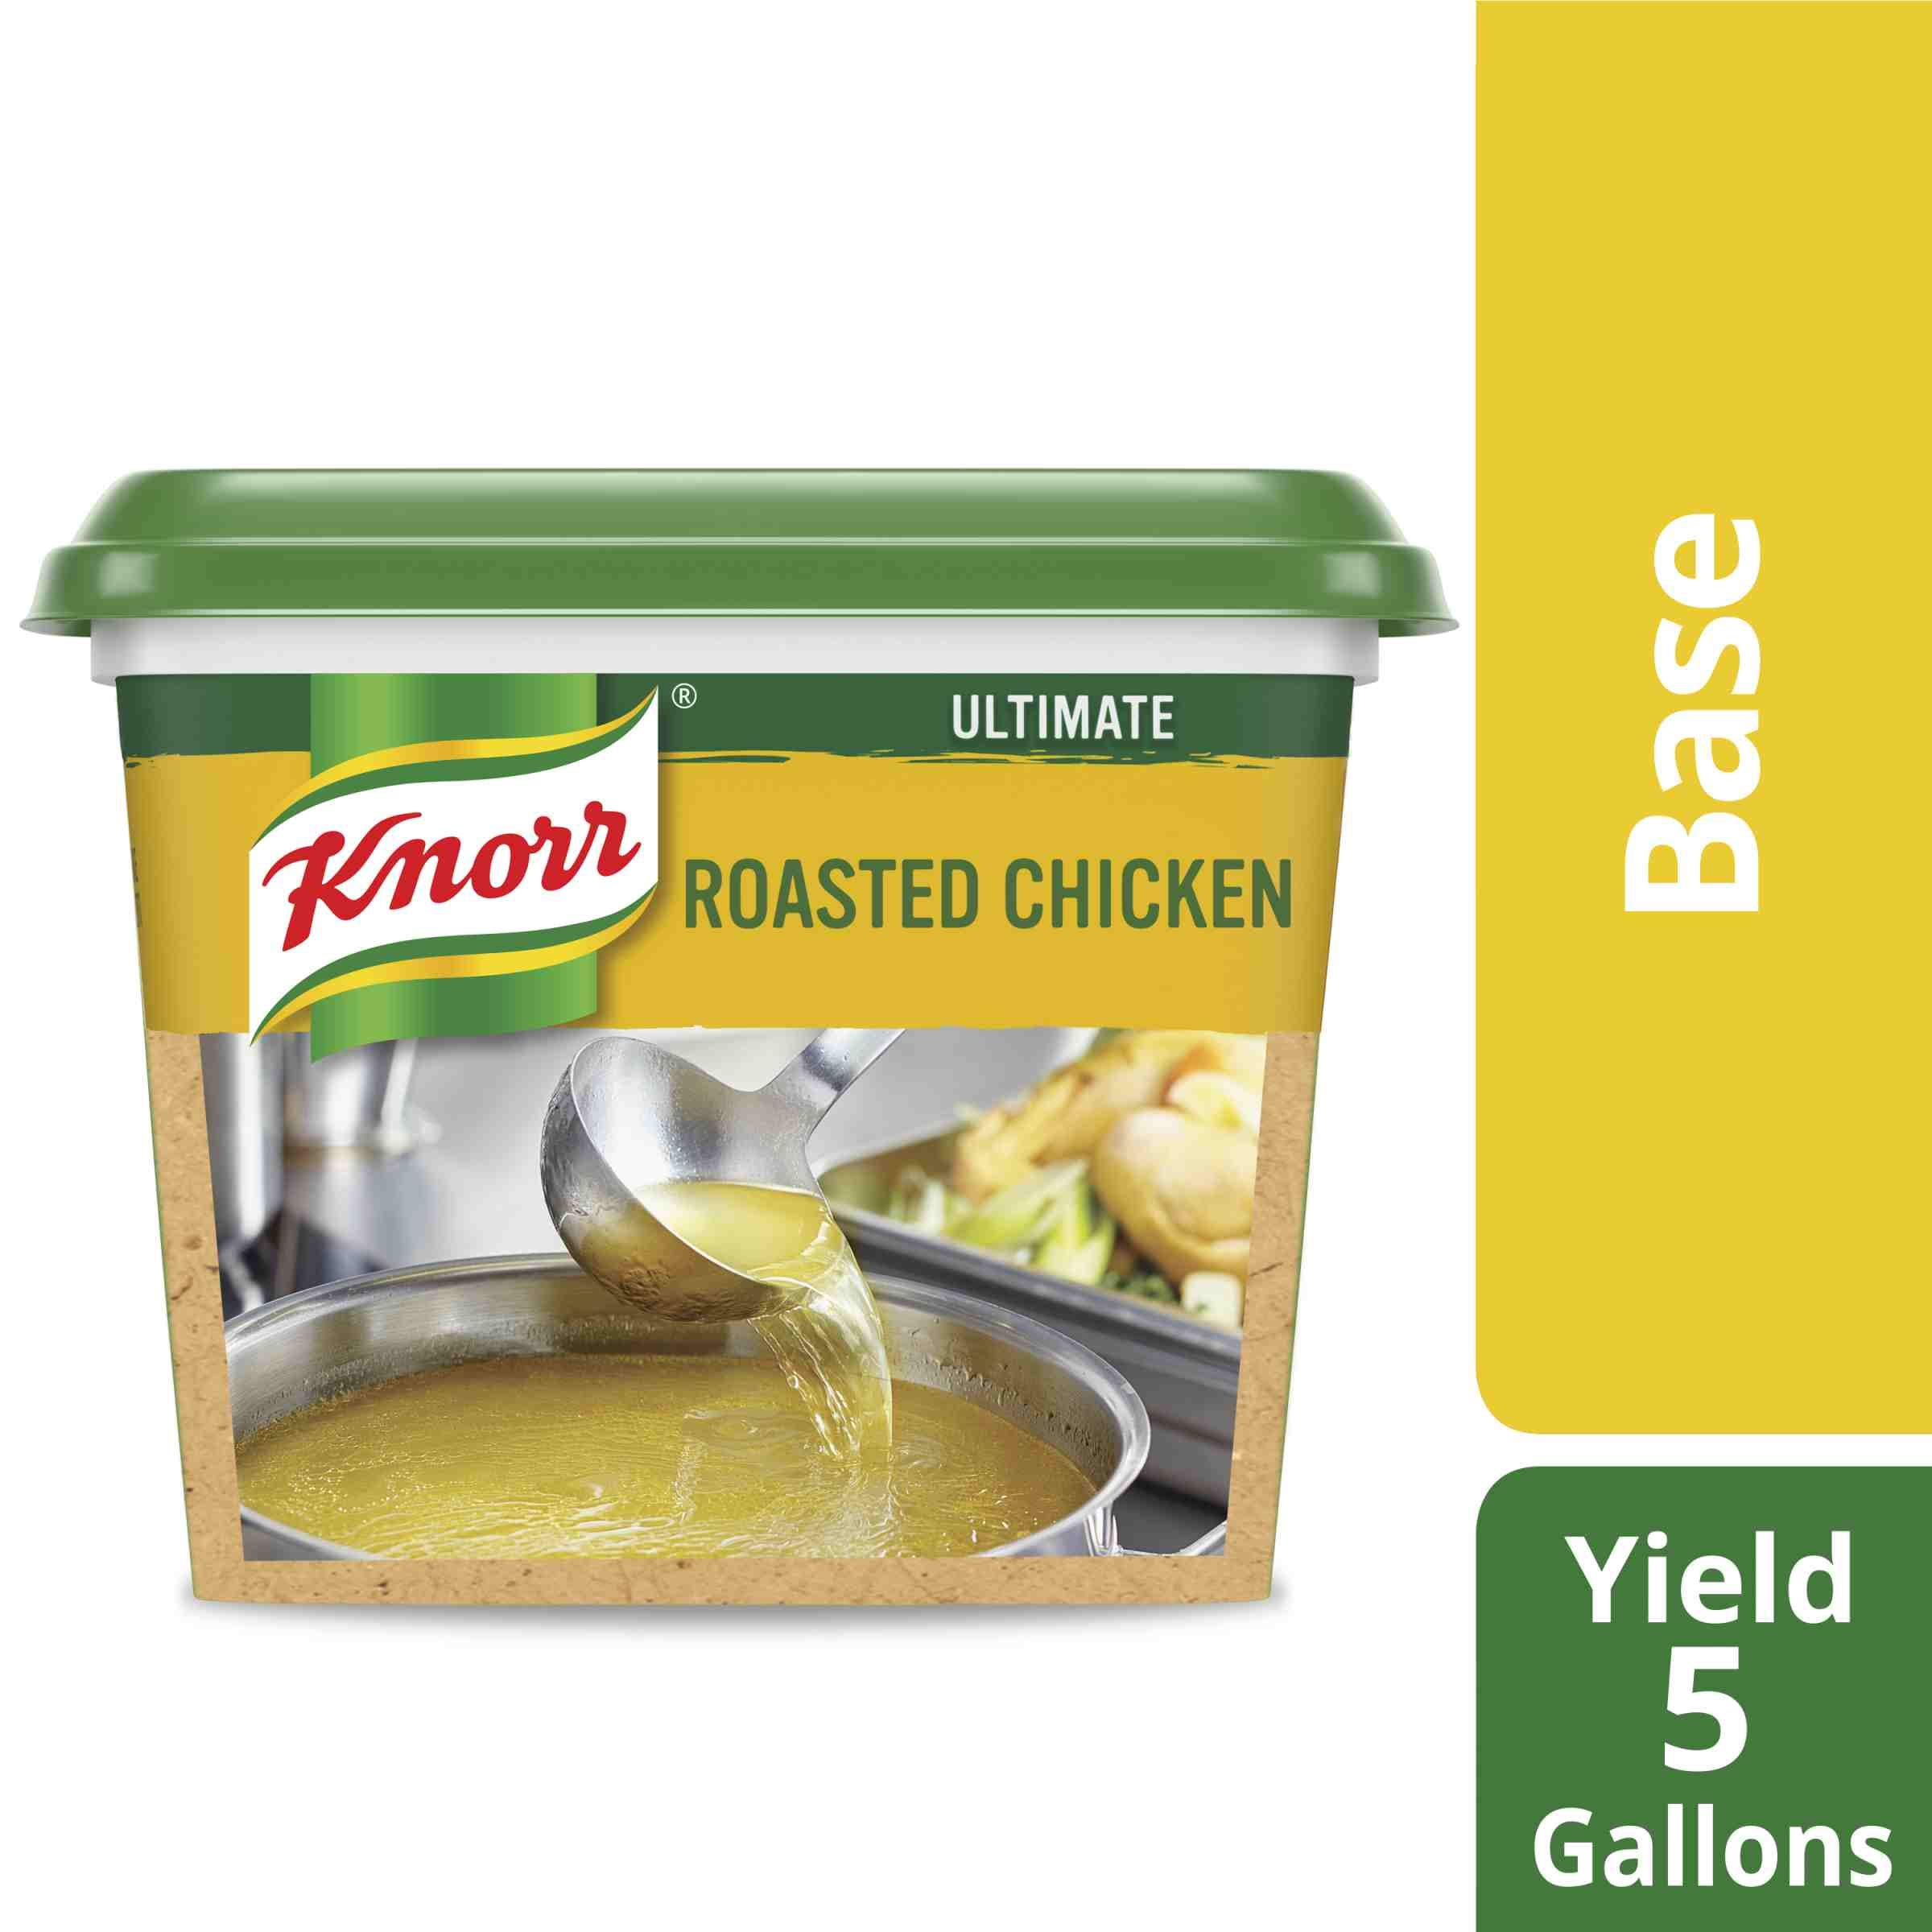 Knorr Professional Ultimate Chicken Stock Base Gluten Free, No Artificial Flavors or Preservatives, No added MSG, Colors from Natural Sources, 1 lb, Pack of 6 by Knorr